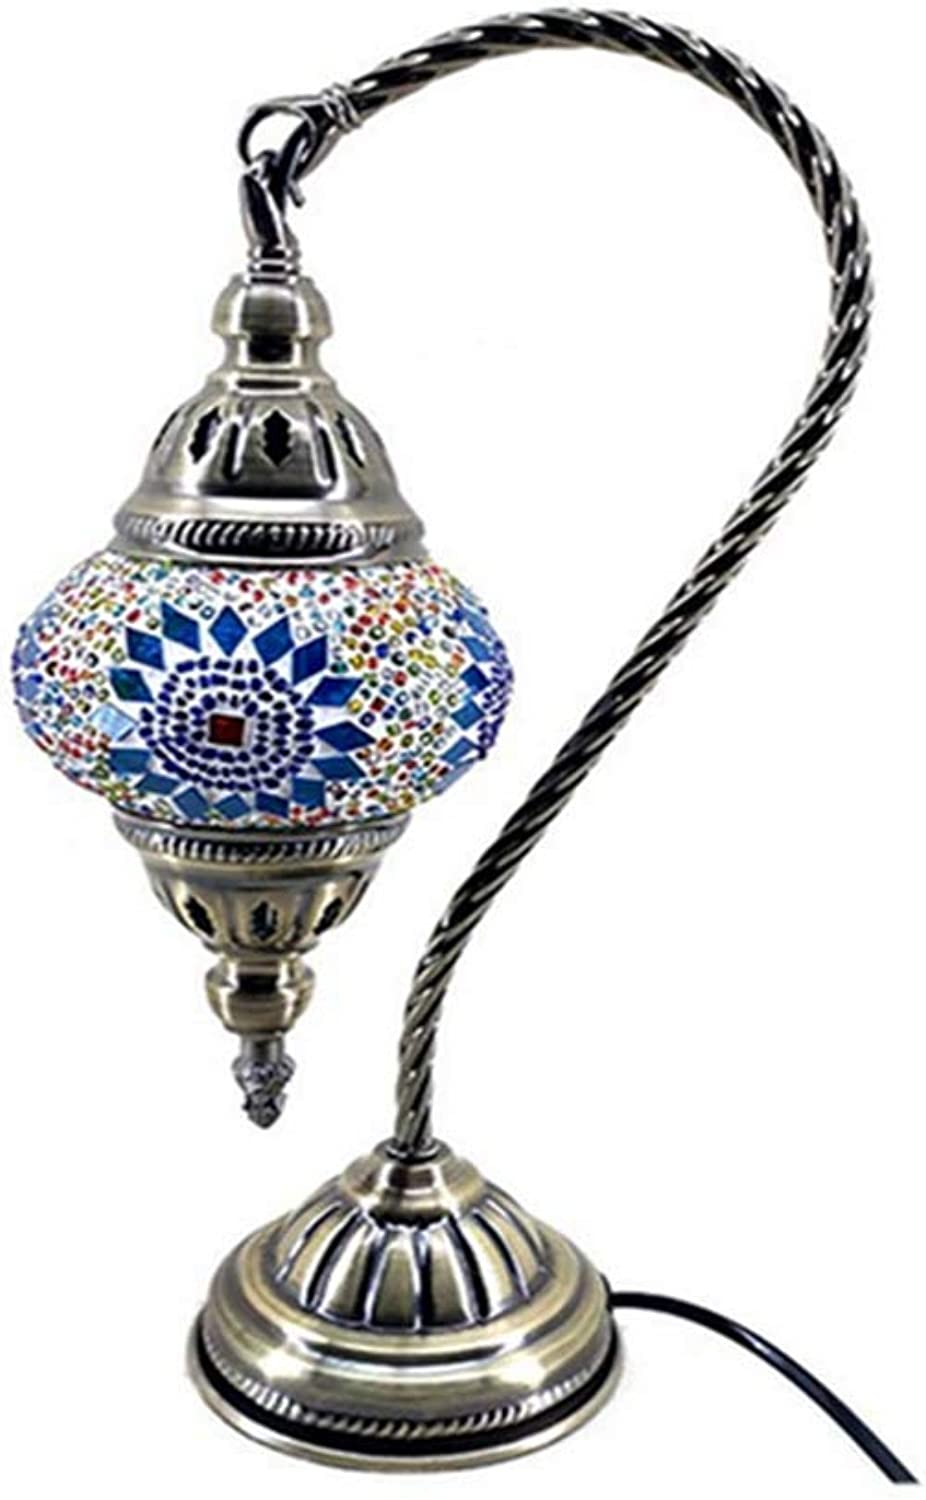 Chandelierturkish Mosaic Table Lamp MGoldccan Mediterranean Style Glass Table Lamp Bedroom Living Room Kids Room Desk Light